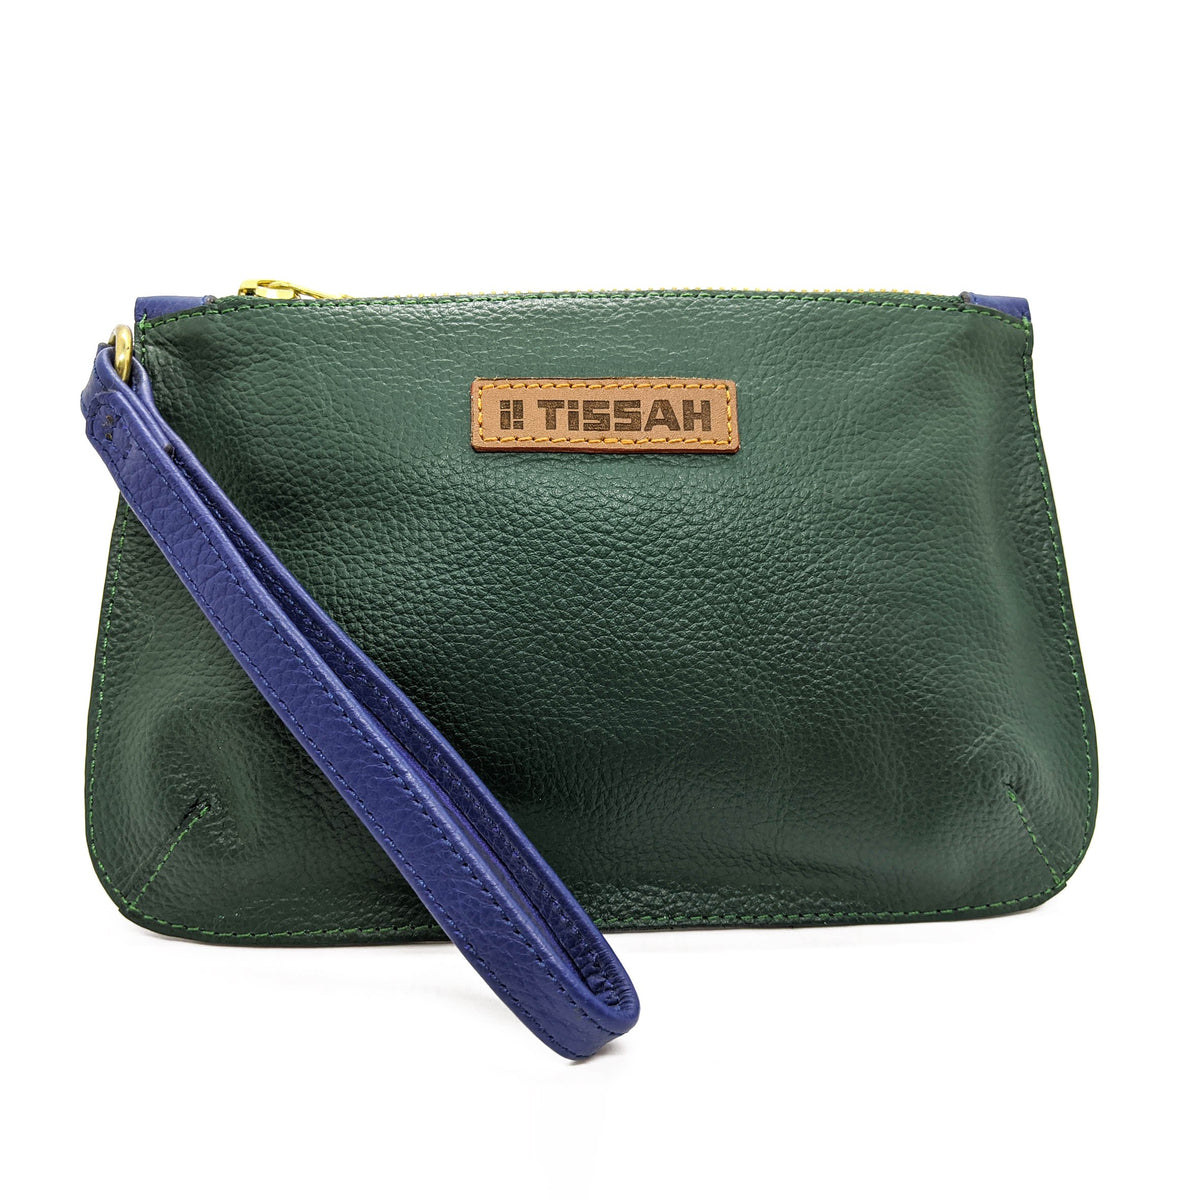 Wristlet - Green with Blue trimmings